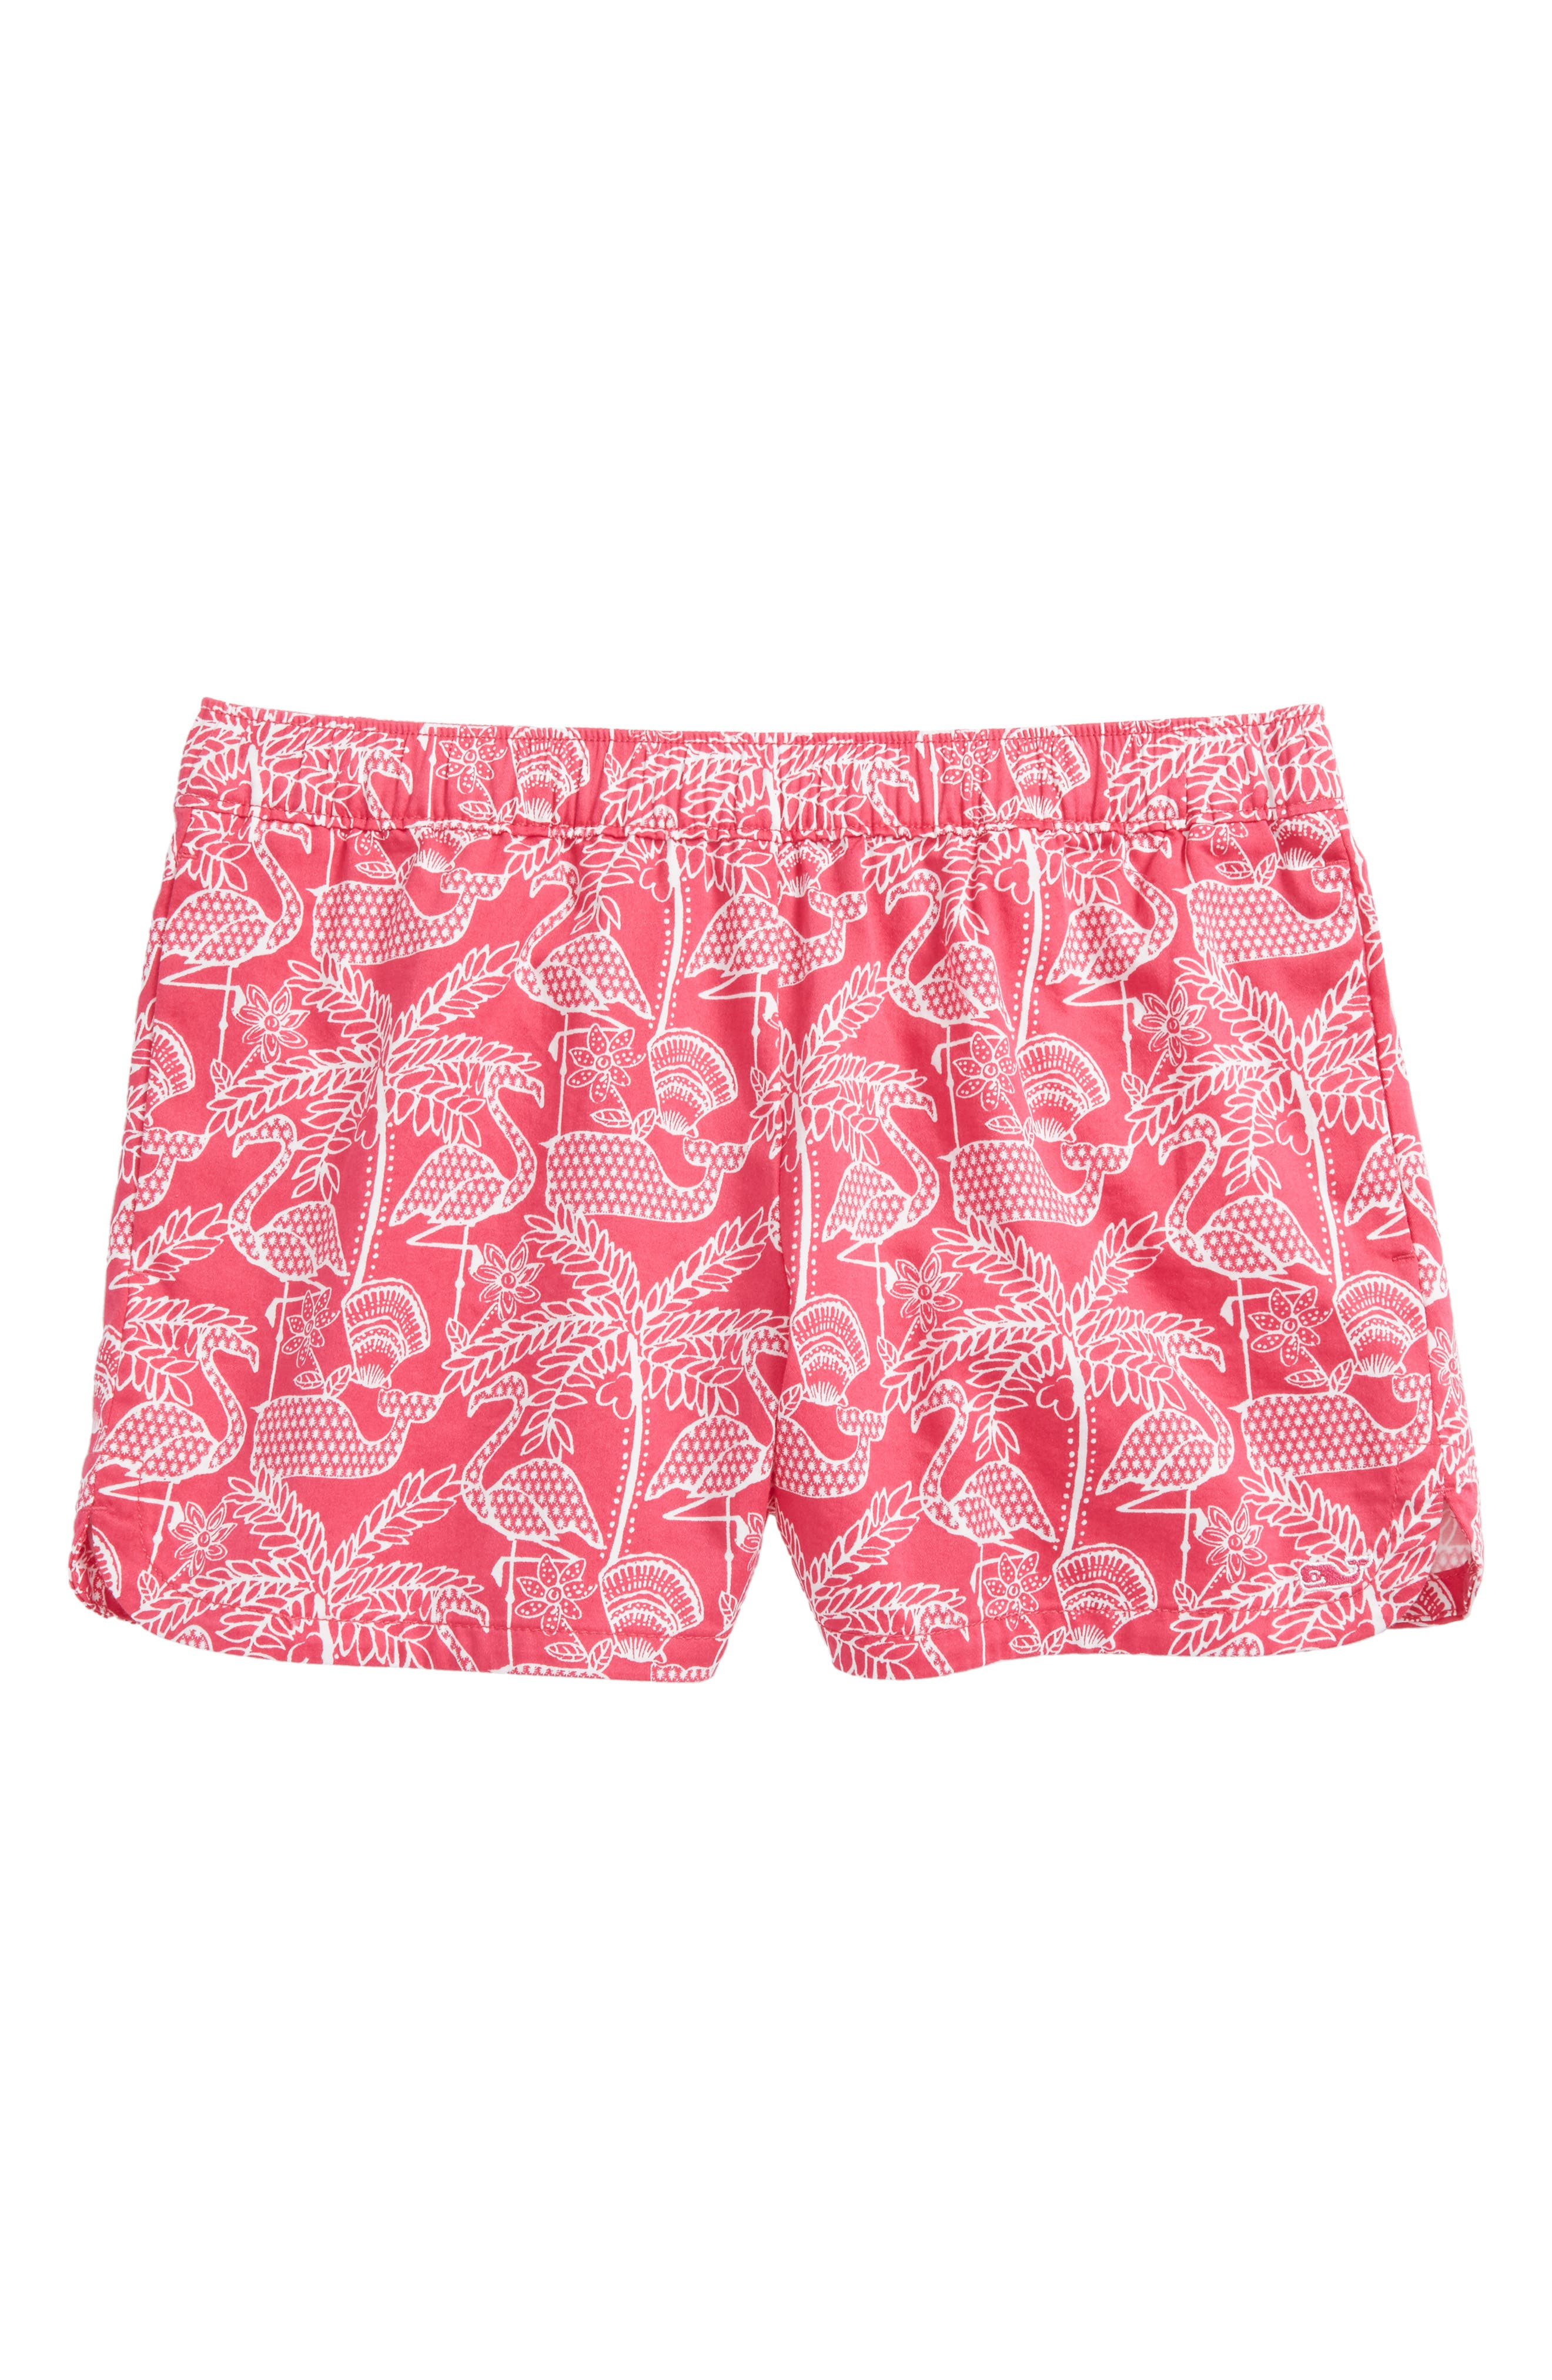 Flamingo Print Shorts,                             Main thumbnail 1, color,                             658